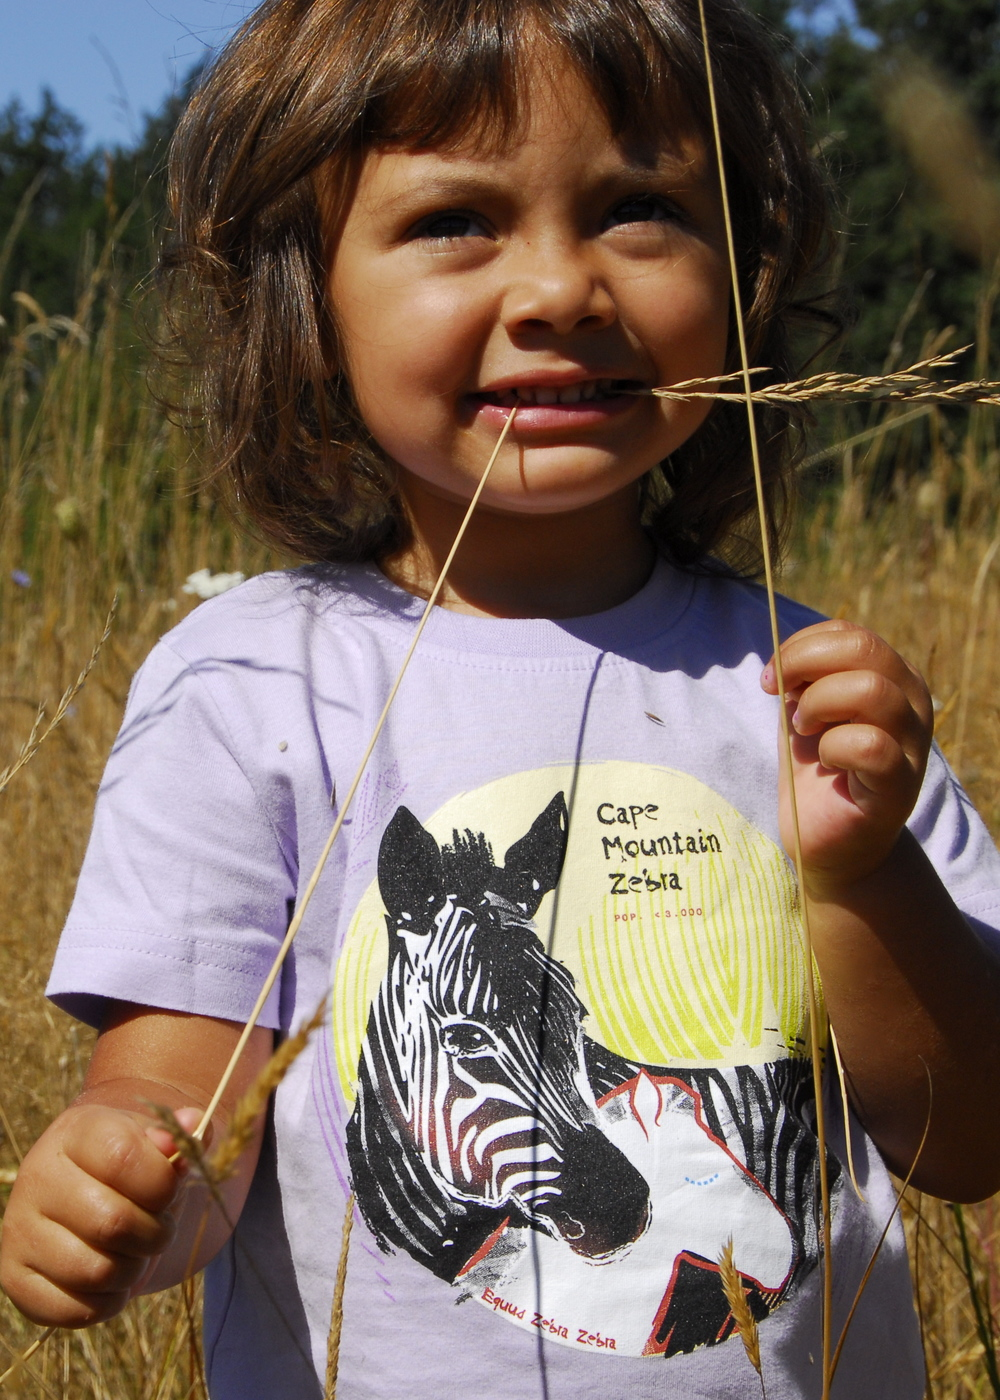 SpeeZees Cape Mountain Zebra kids tees in  Lavender .  T-shirts made from  100% GOTS certified organic cotton  and printed with eco-sensitive inks.   $1 for One.   $1 from every SpeeZees Cape Mountain Zebra tee supports:  Equid Specialist Group,  equids.org